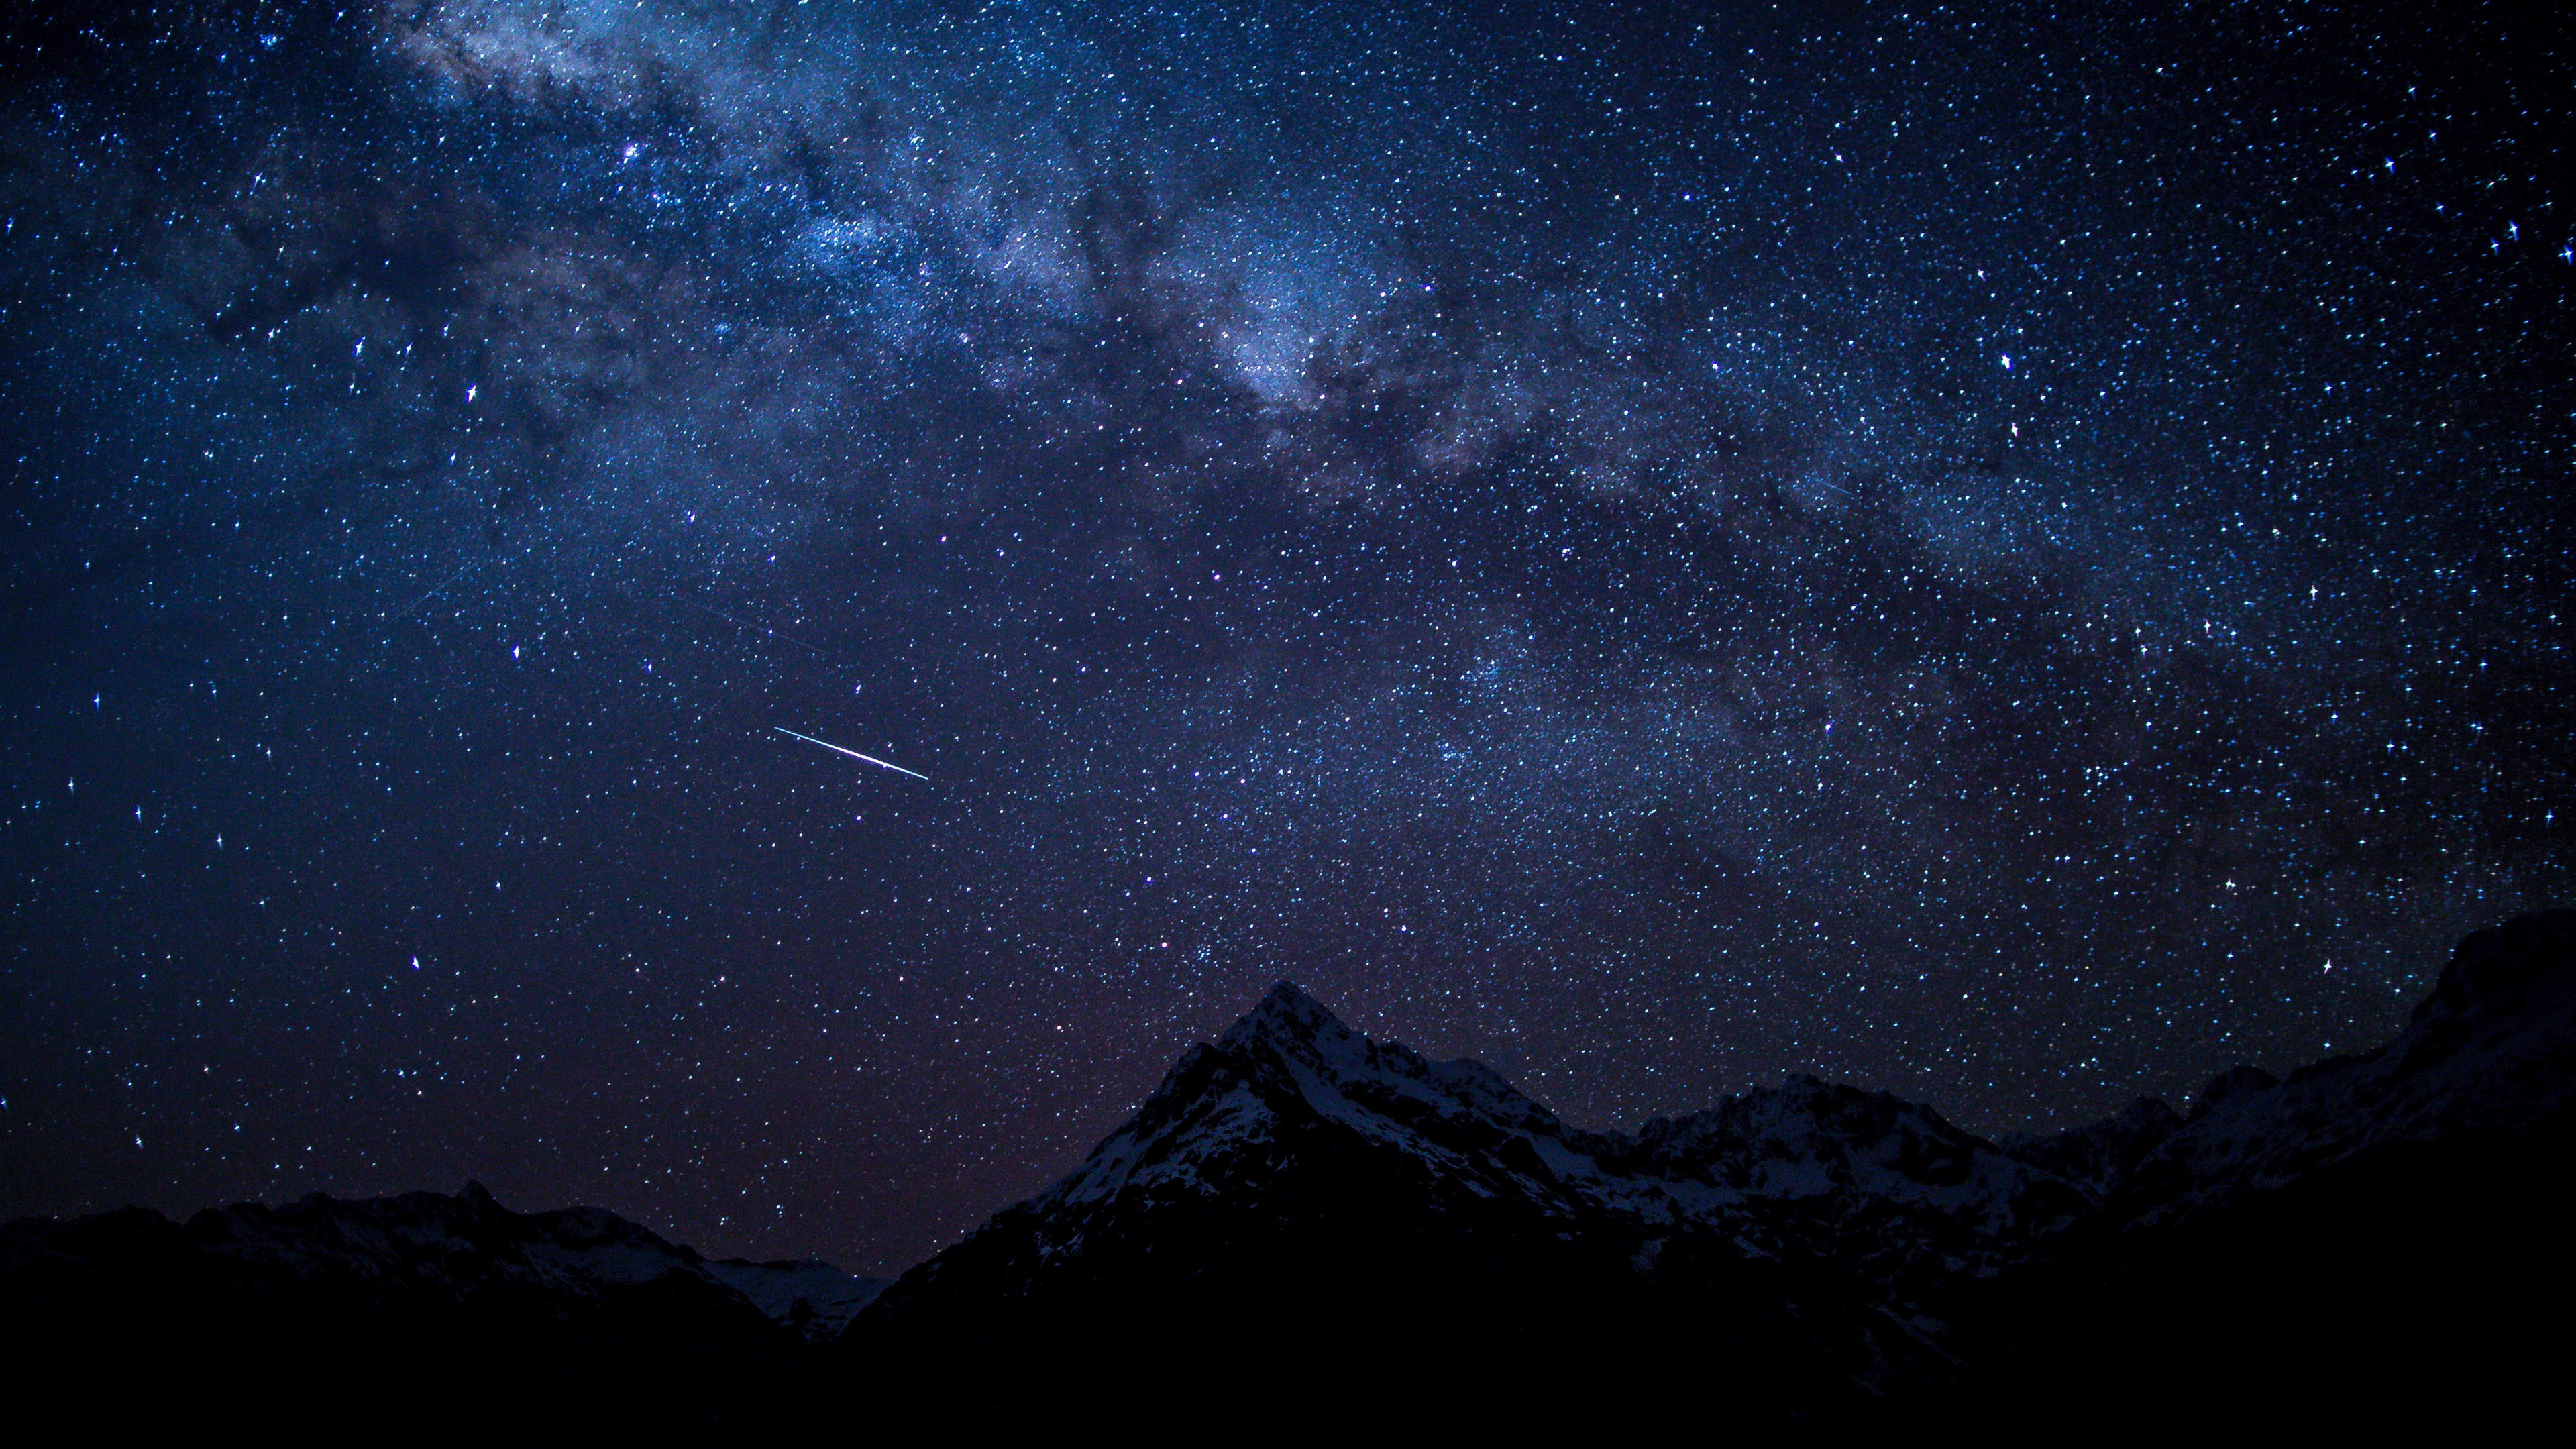 Download 3840x2160 Wallpaper Starry Sky Night Mountains